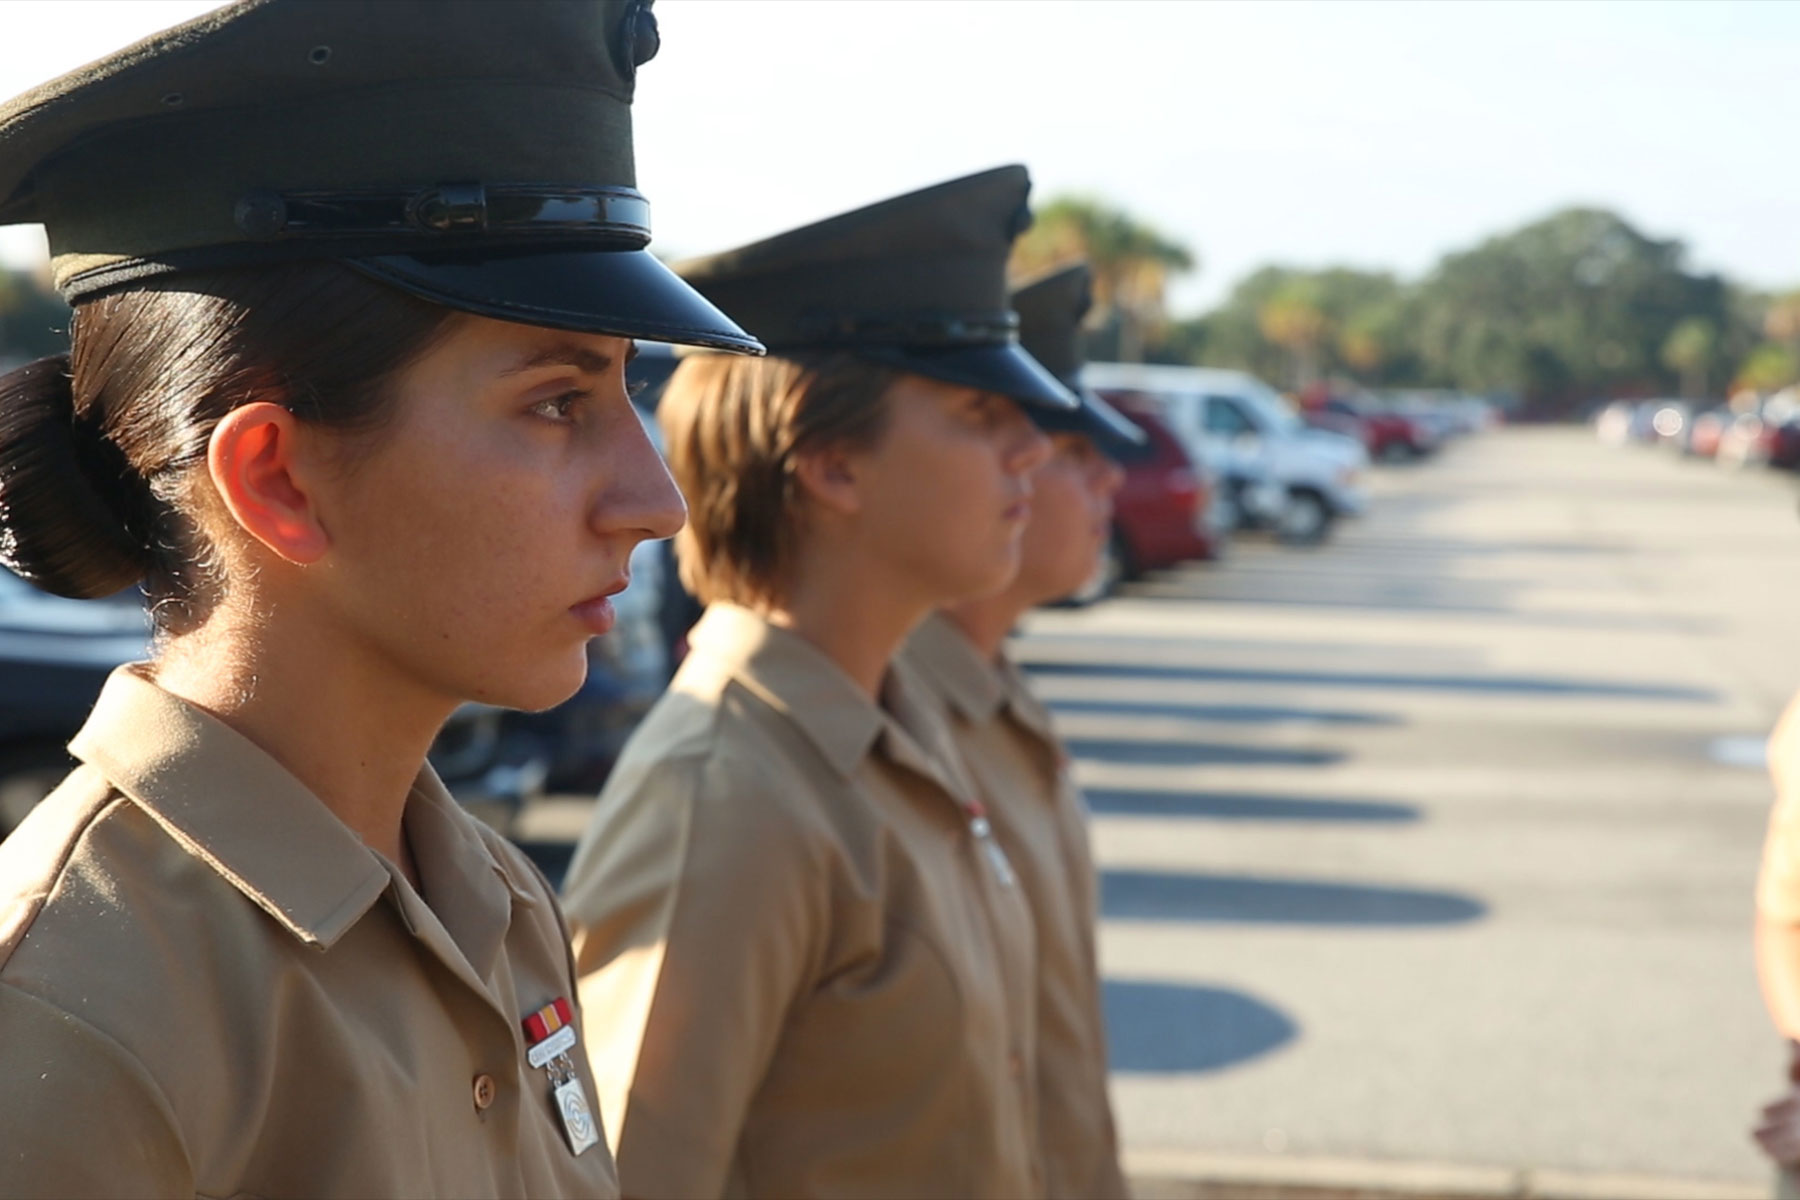 Pfc. Amanda H. Issa prepares for a graduation ceremony Sept. 30, 2016, on Parris Island, S.C. Issa, 21, from Madison Heights, Mich., grew up in Mosul, Iraq, and moved to the U.S. in May 2011. (Photo: U.S. Marine Corps/Carlin Warren)